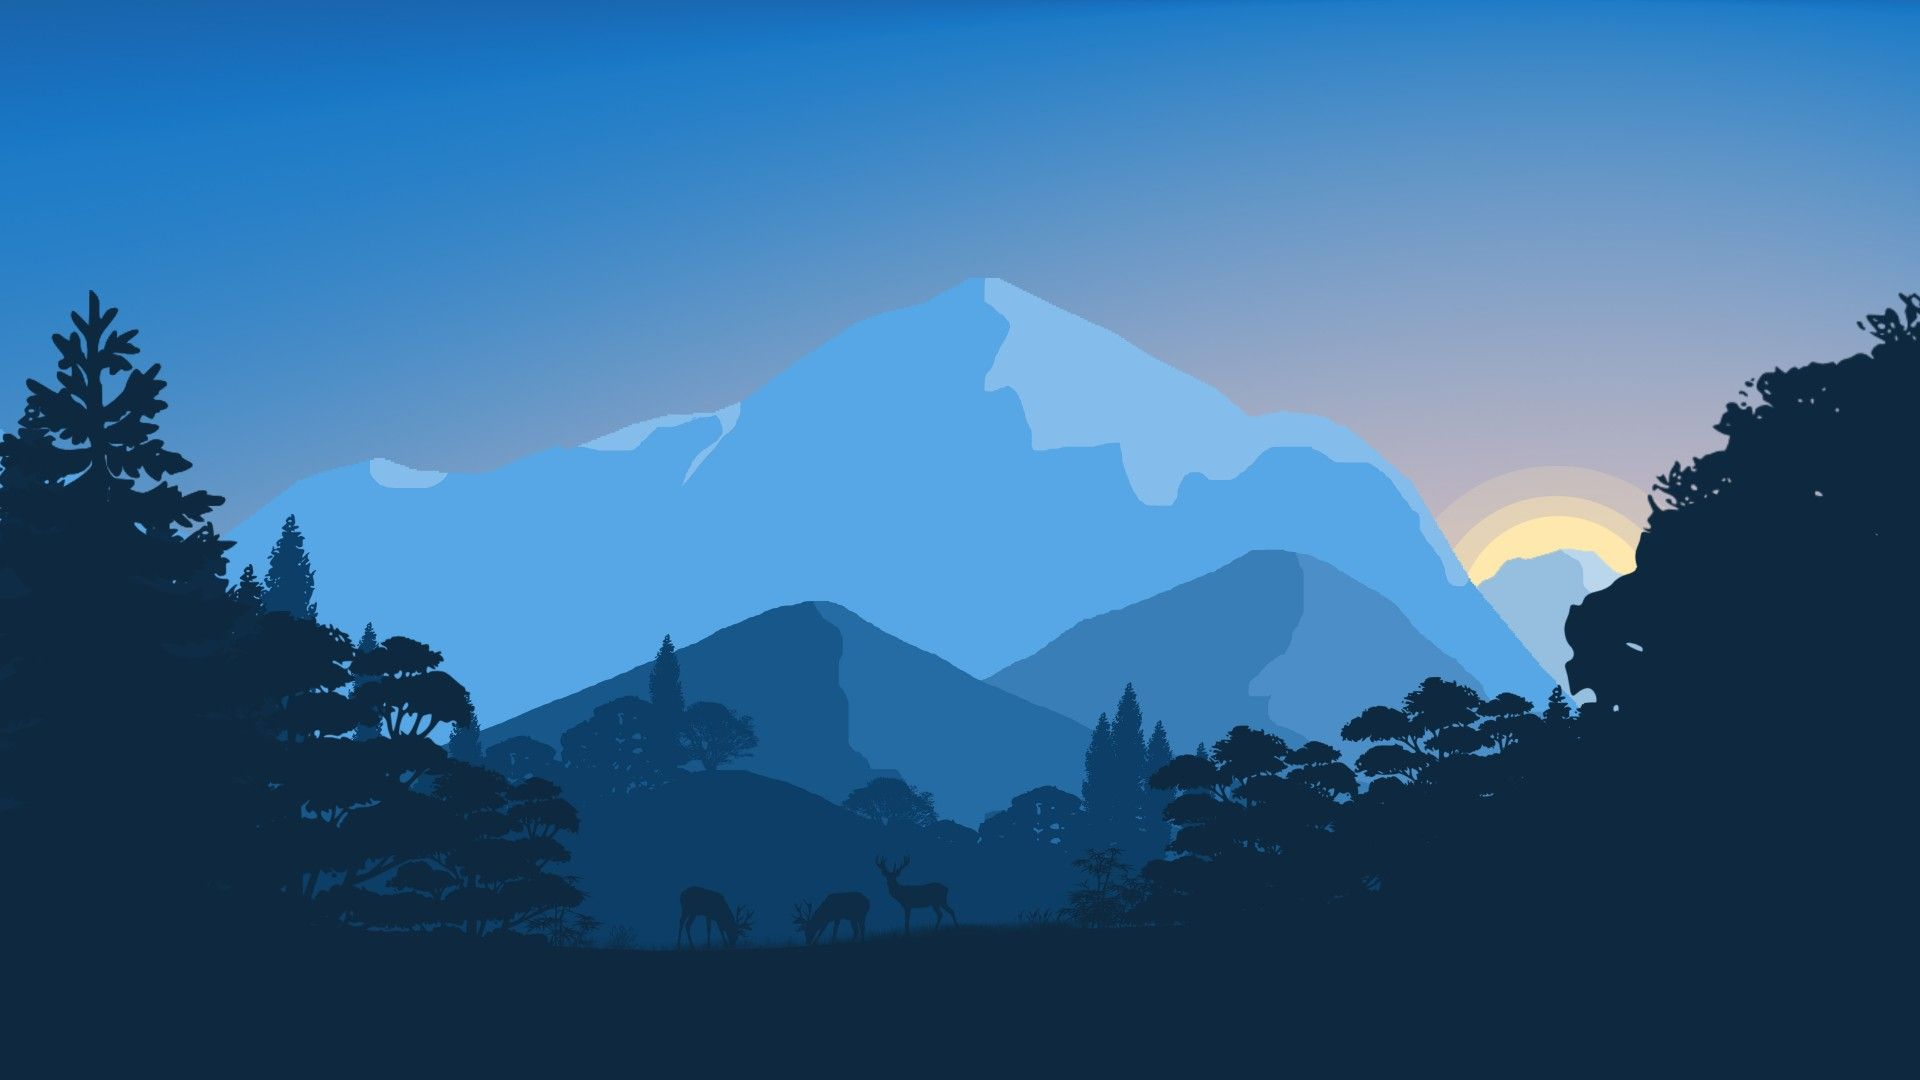 Free Mountain Vector wallpaper for laptop